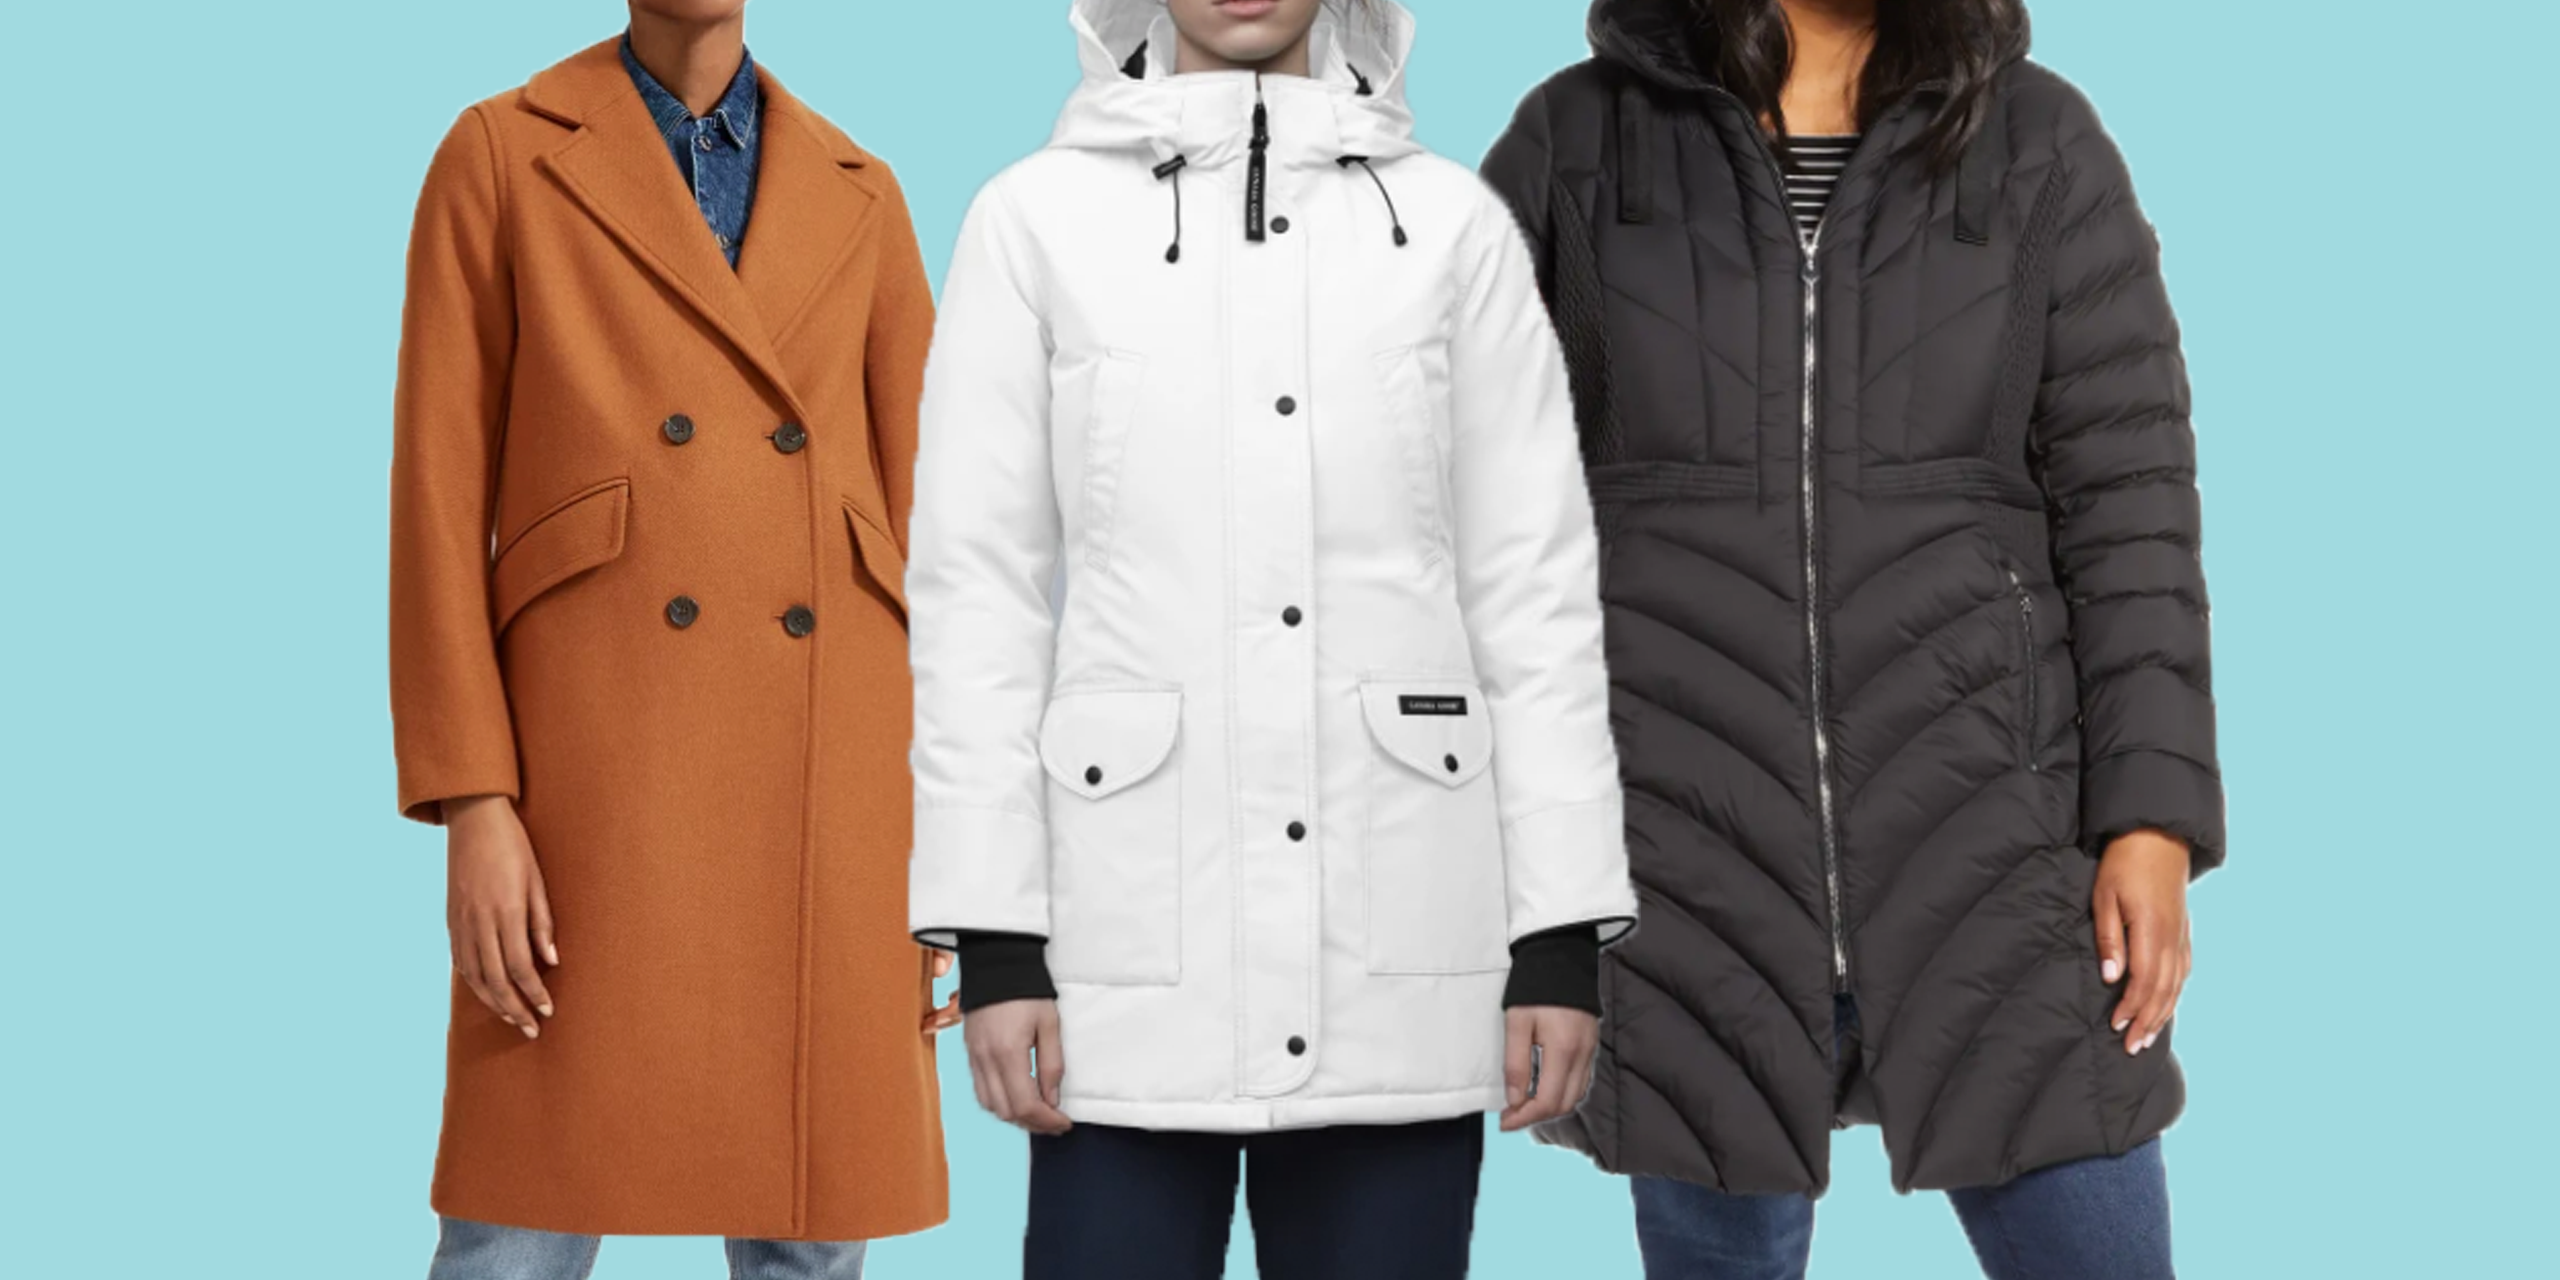 Why shop the best thermal long coats and jackets for individuals in the wintertime?